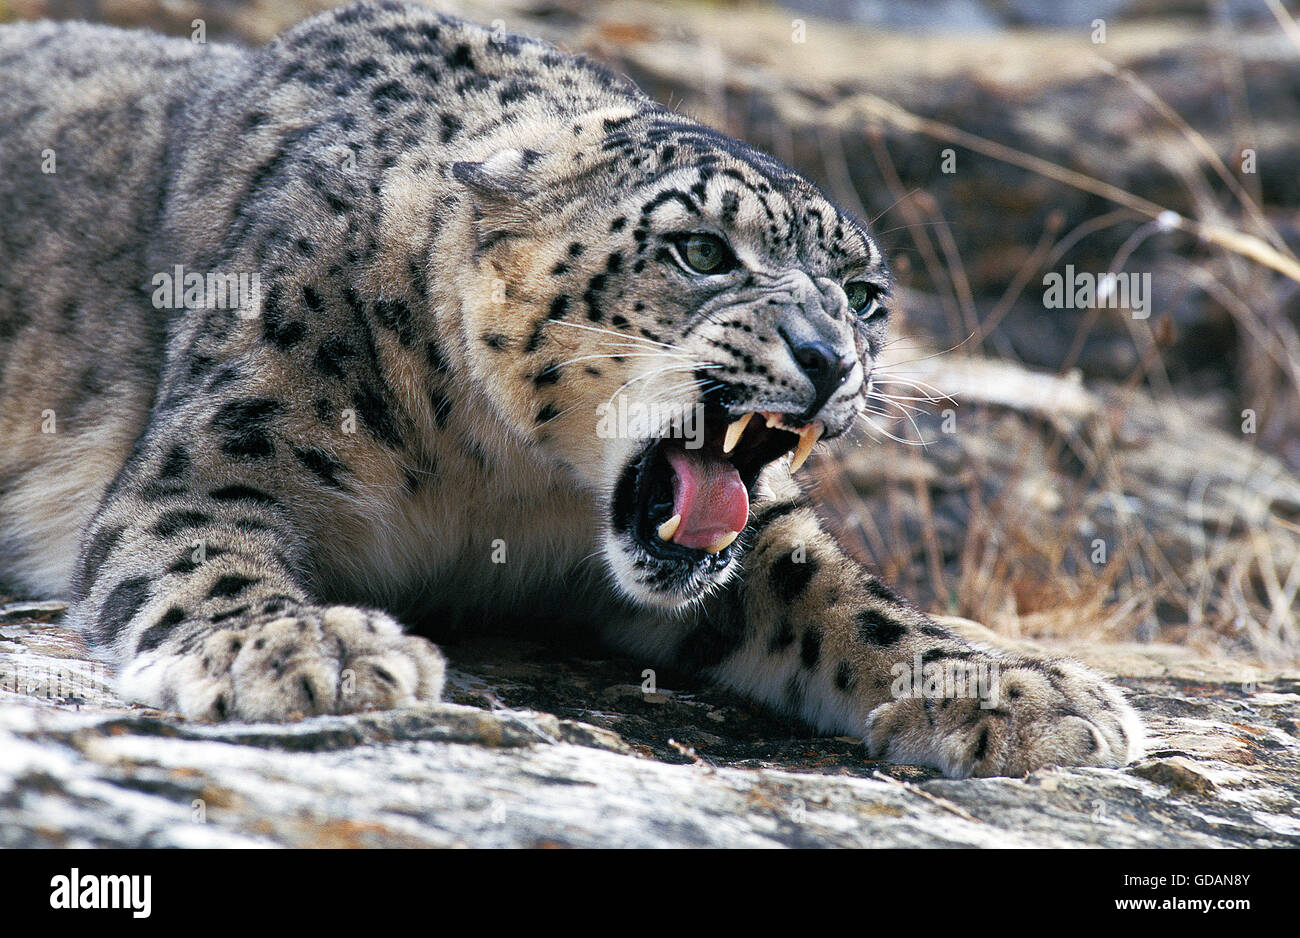 SNOW LEOPARD OR OUNCE uncia uncia, ADULT SNARLING, THREAT POSTURE - Stock Image